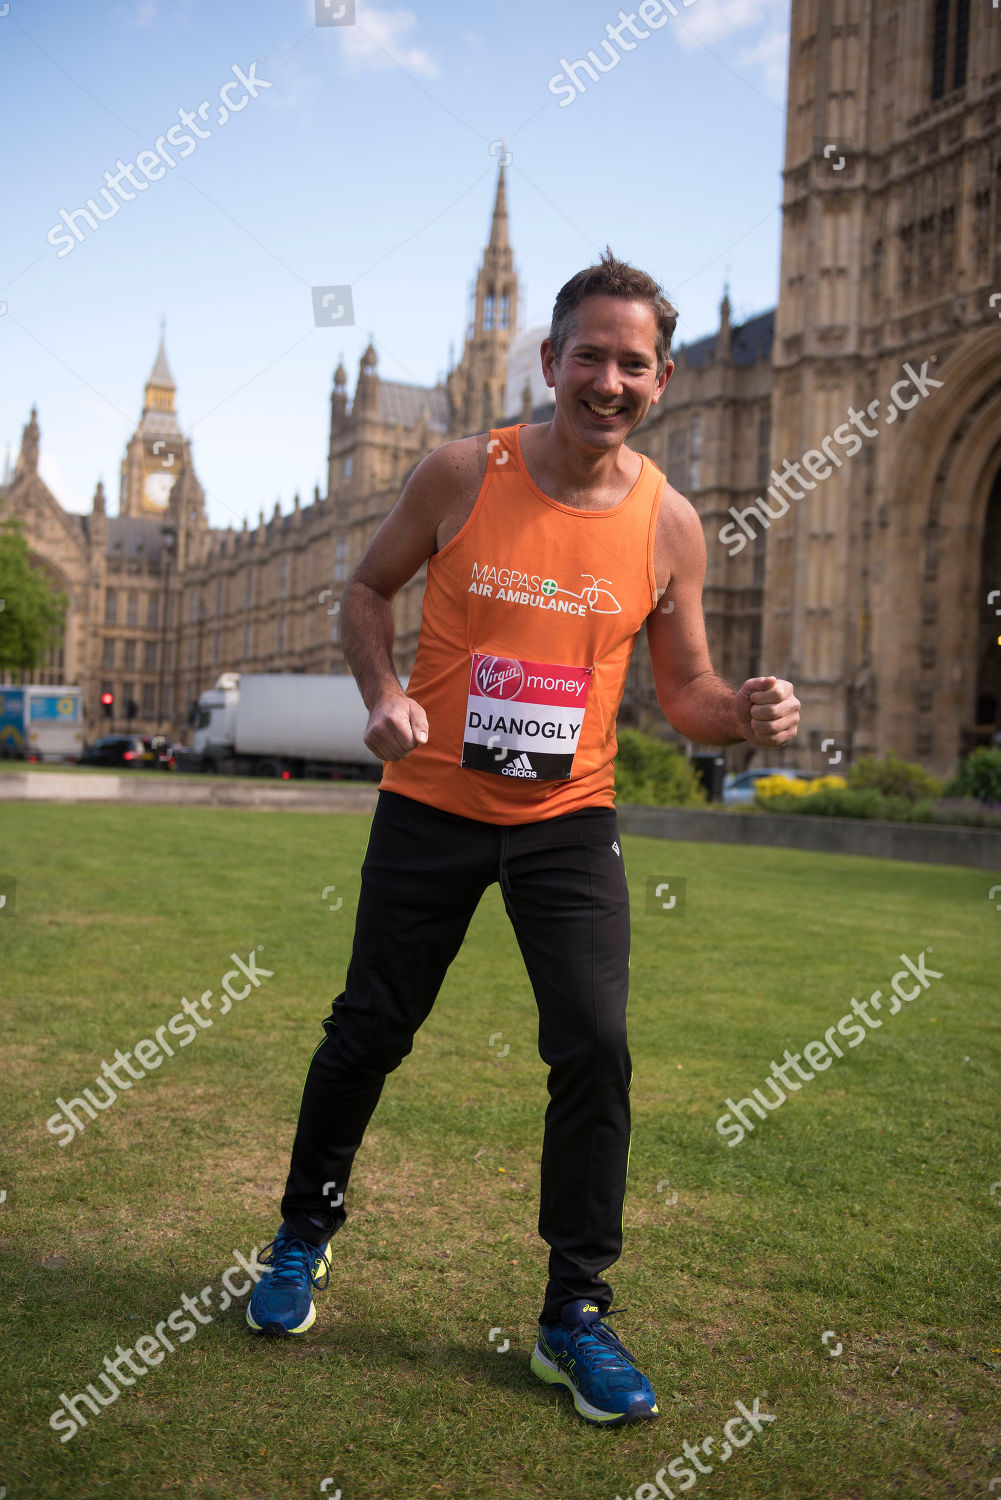 Jonathan Djanogly: A Total Of 16 Mps Are Taking On The Challenge Of Running The 2017 Virgin Money London Marathon Smashing All Previous Records For Mp Entries. The Previous Record Of Nine Was Set In 2014. The 16 Include Three Women Mps – Another Reco